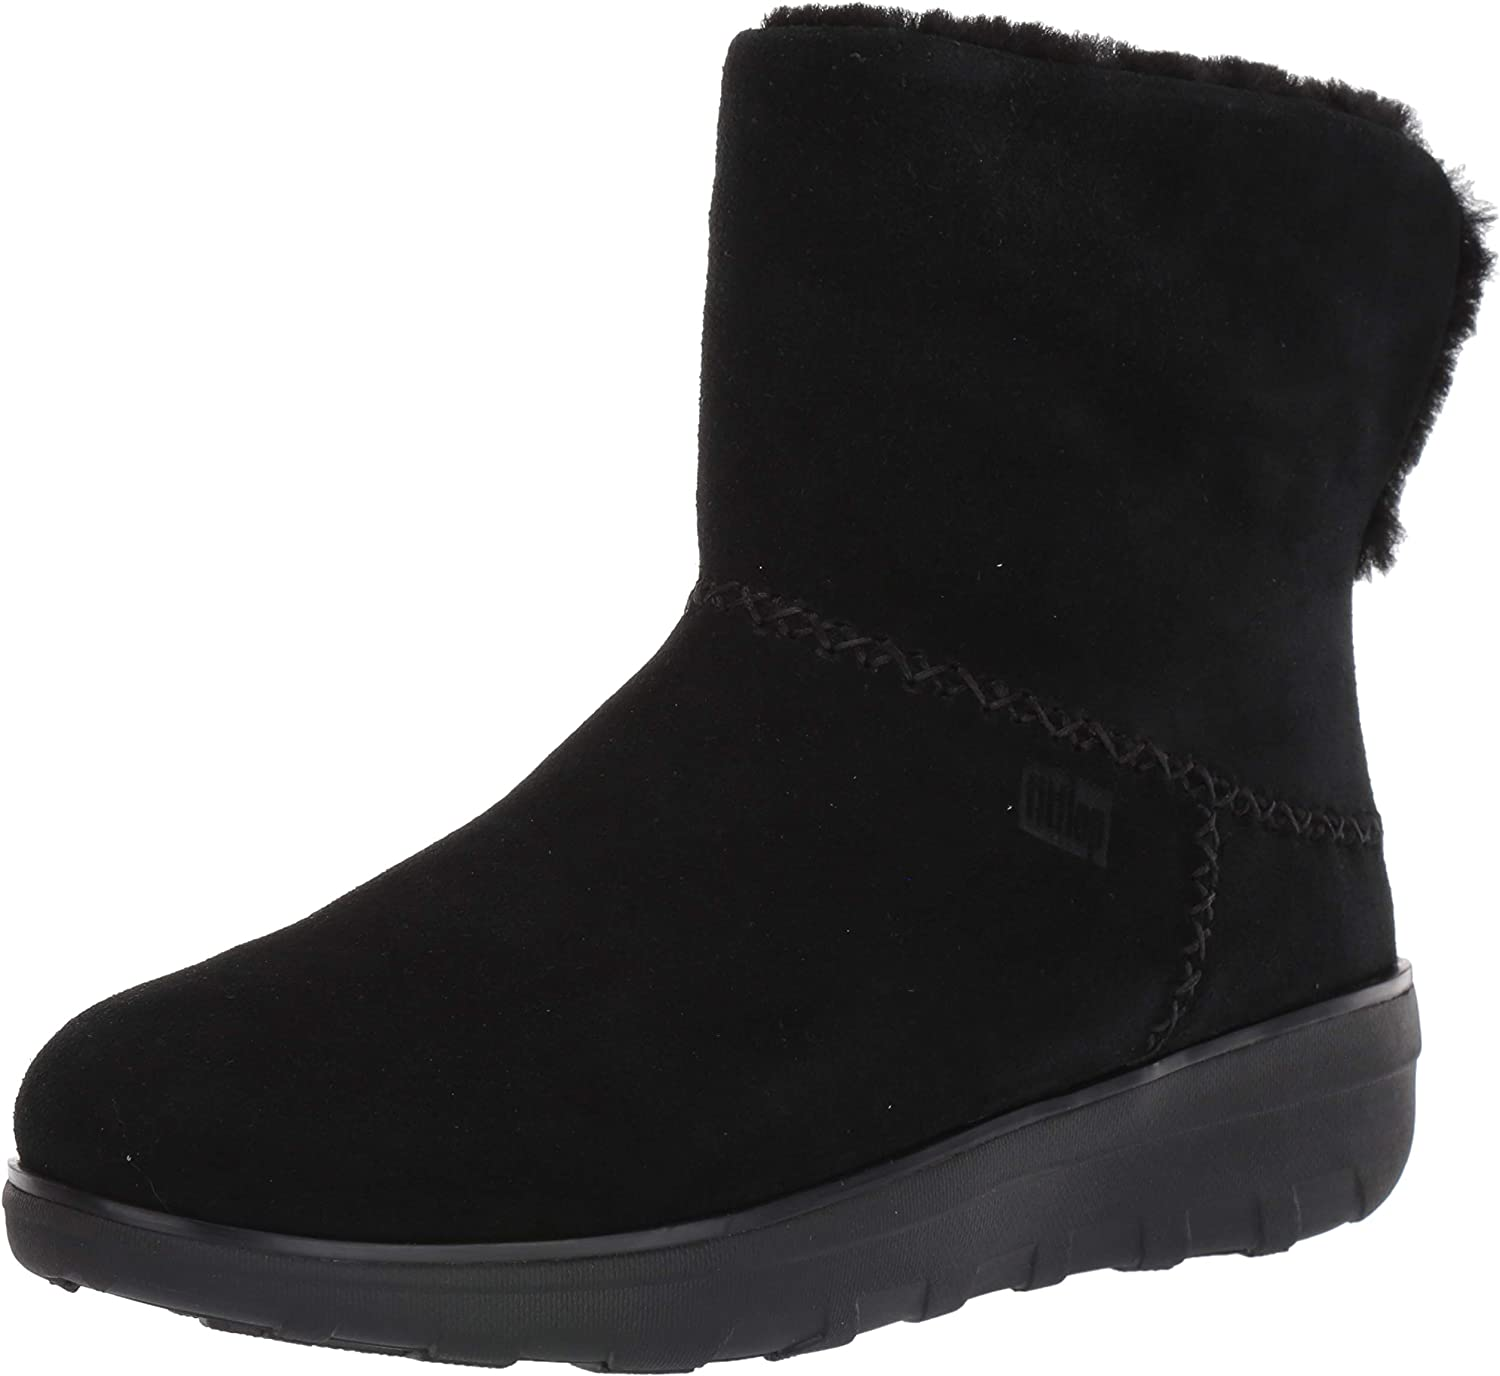 FitFlop Women's Boot, Mukluk